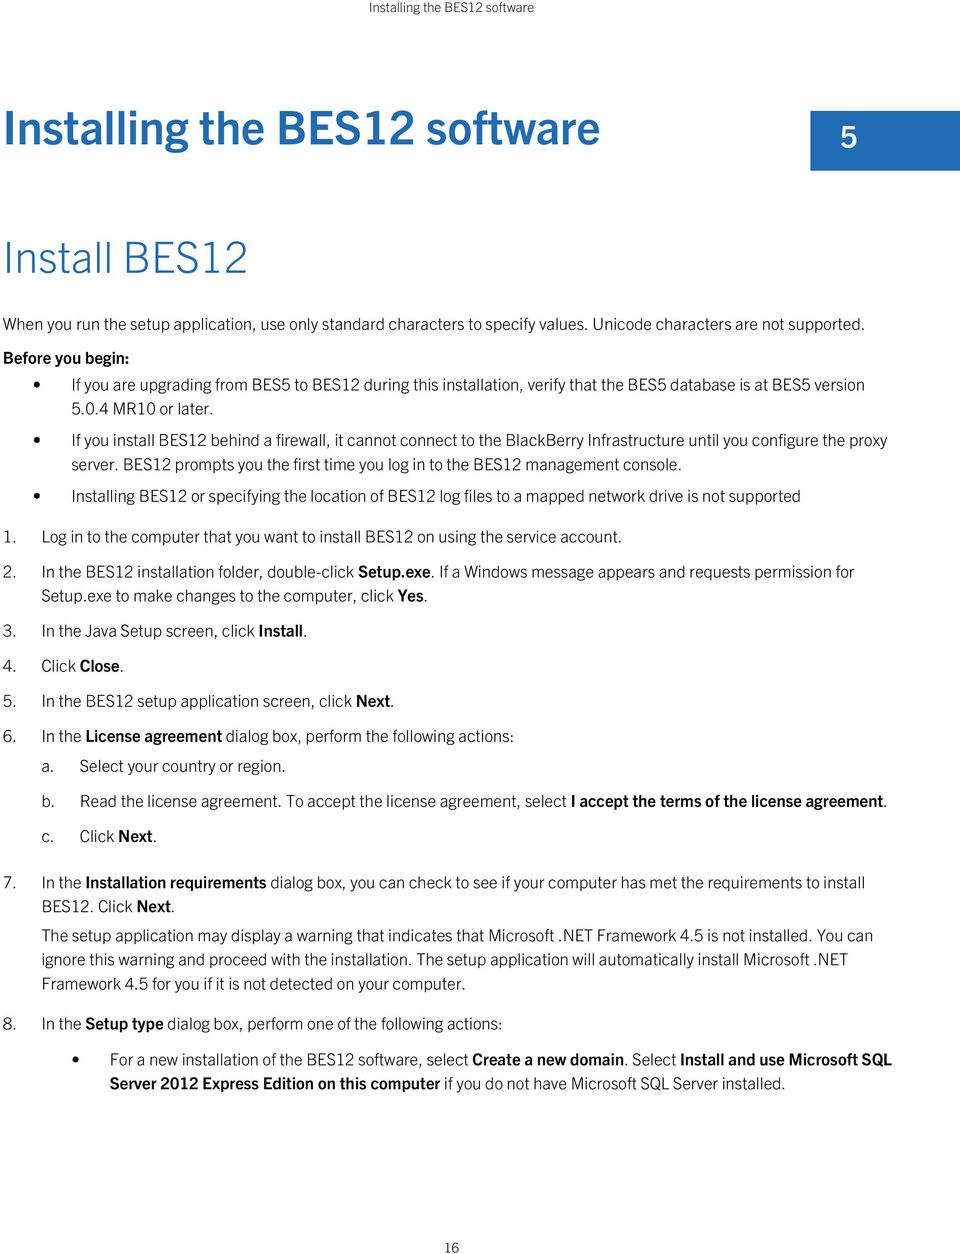 If you install BES12 behind a firewall, it cannot connect to the BlackBerry Infrastructure until you configure the proxy server.